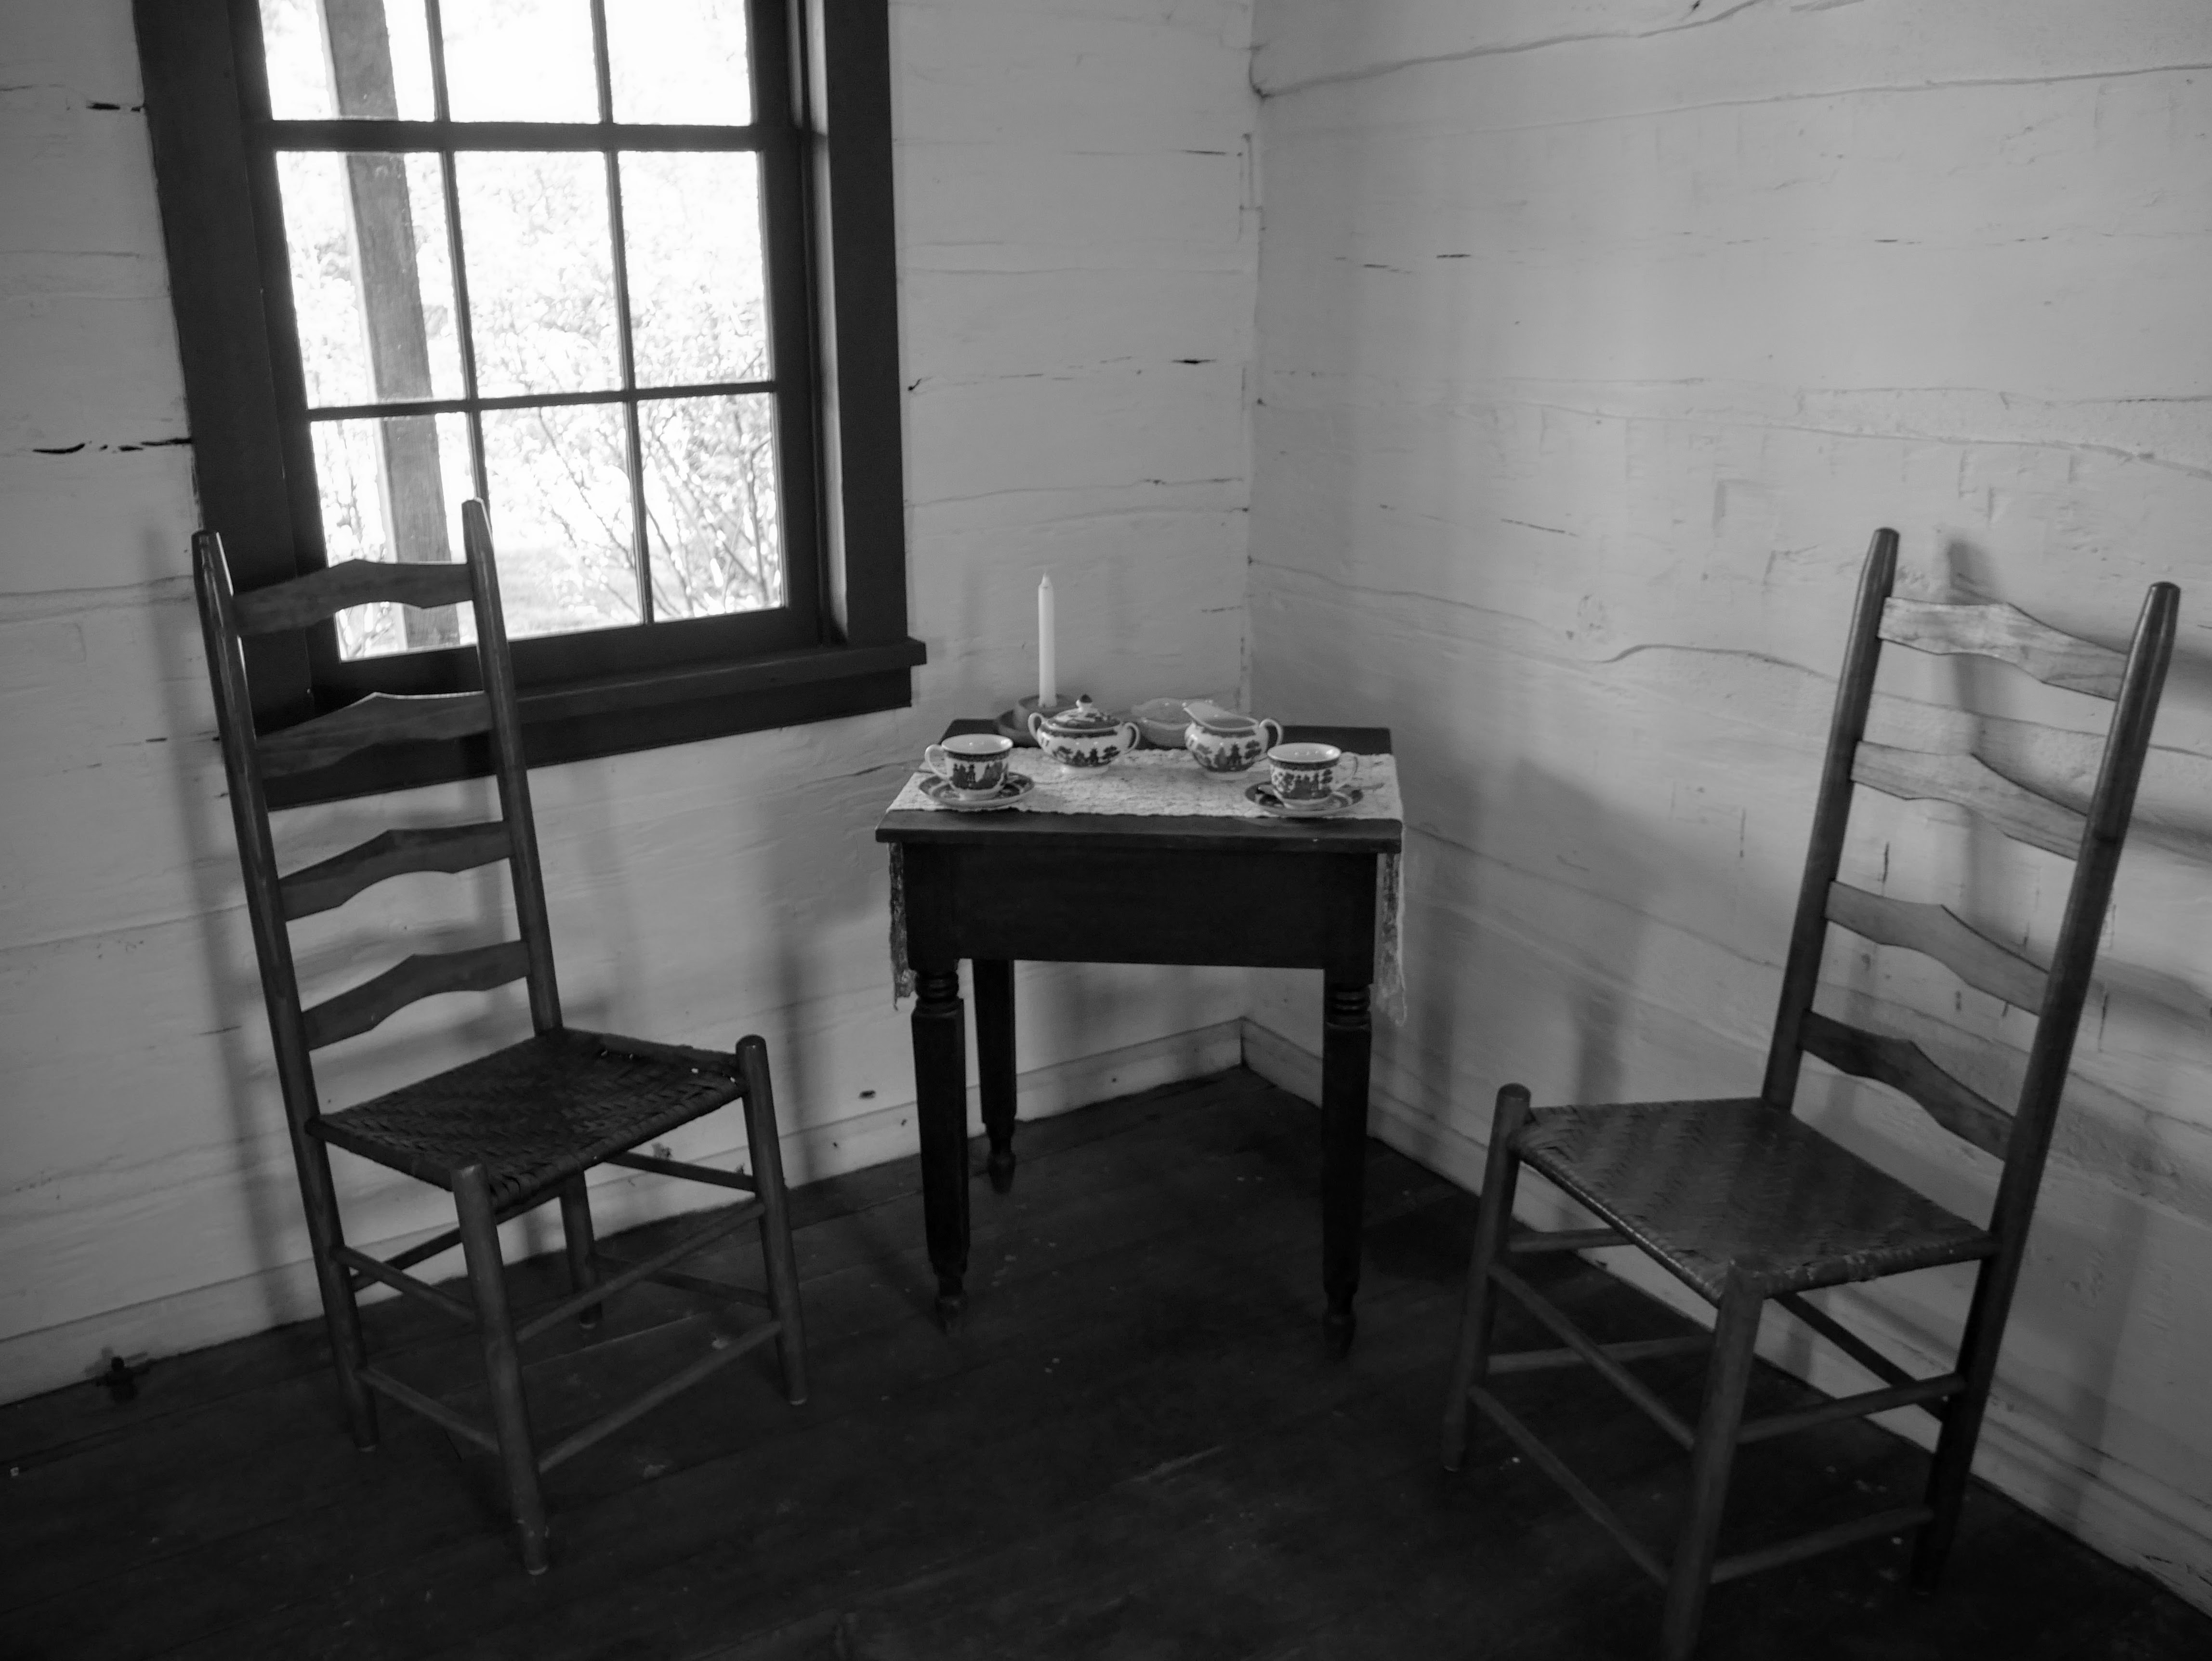 In the corner of a whitewashed room, two straight-backed chairs flank a small side table. Atop the table are two teacups, a sugar bowl, creamer, and one candle.